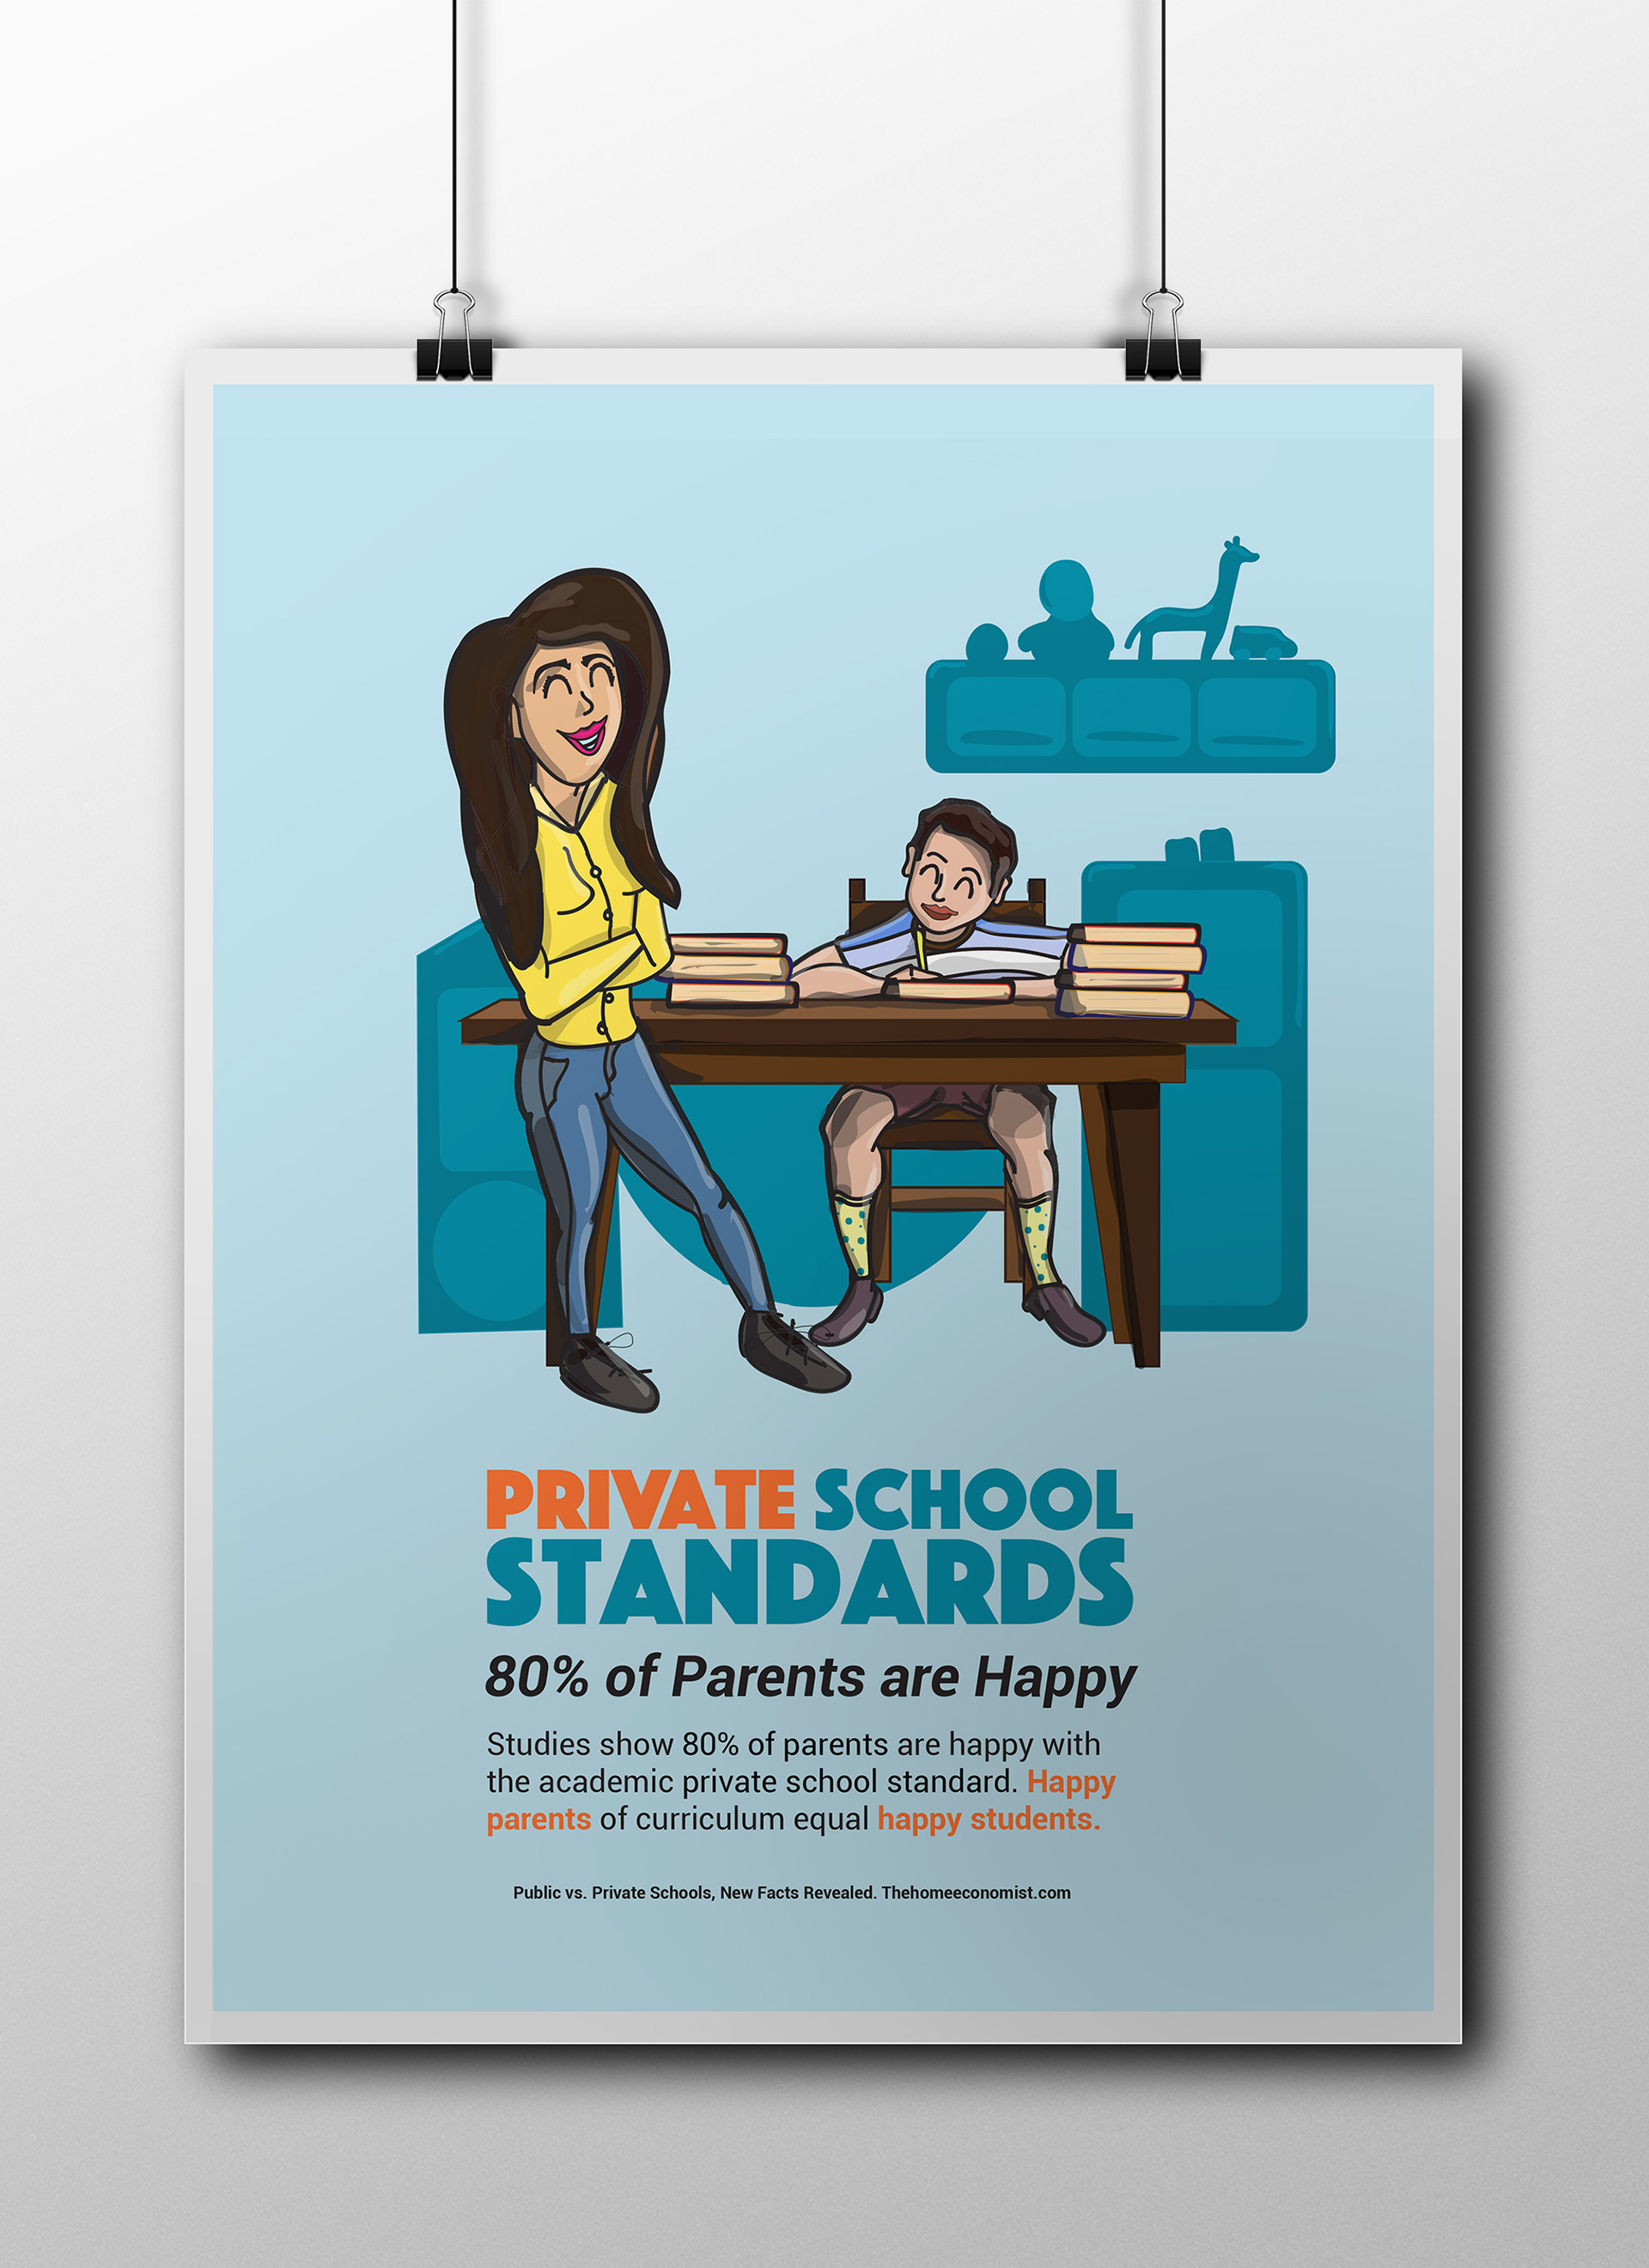 Poster design education - Design A Series Of Posters Promoting Positive Facts About Public And Private Schools For K 12 Education